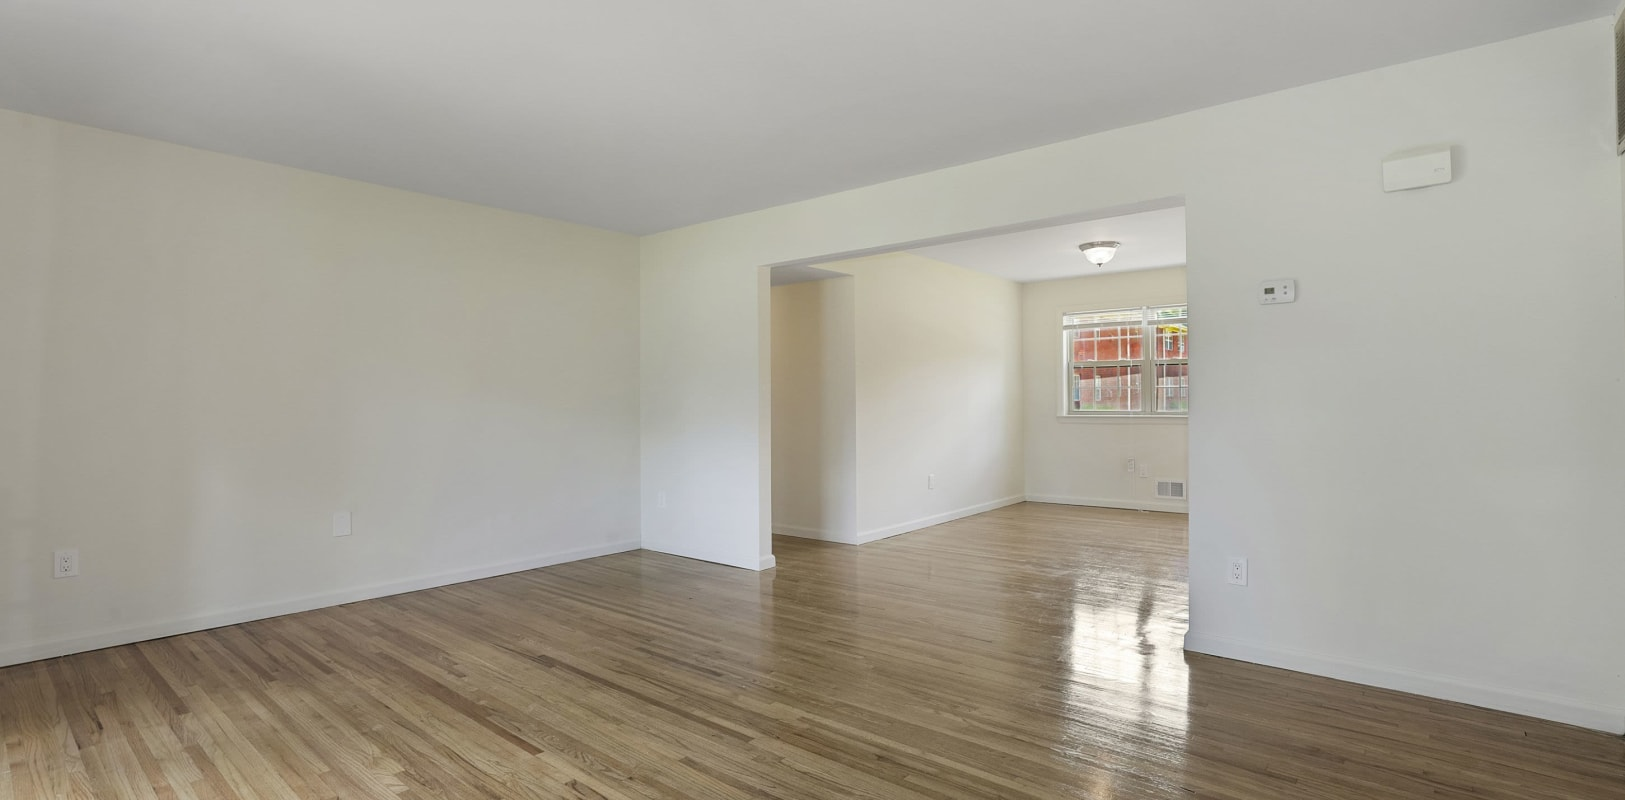 Open concept floor plans with wood style flooring at Madison Arms in Old Bridge, New Jersey